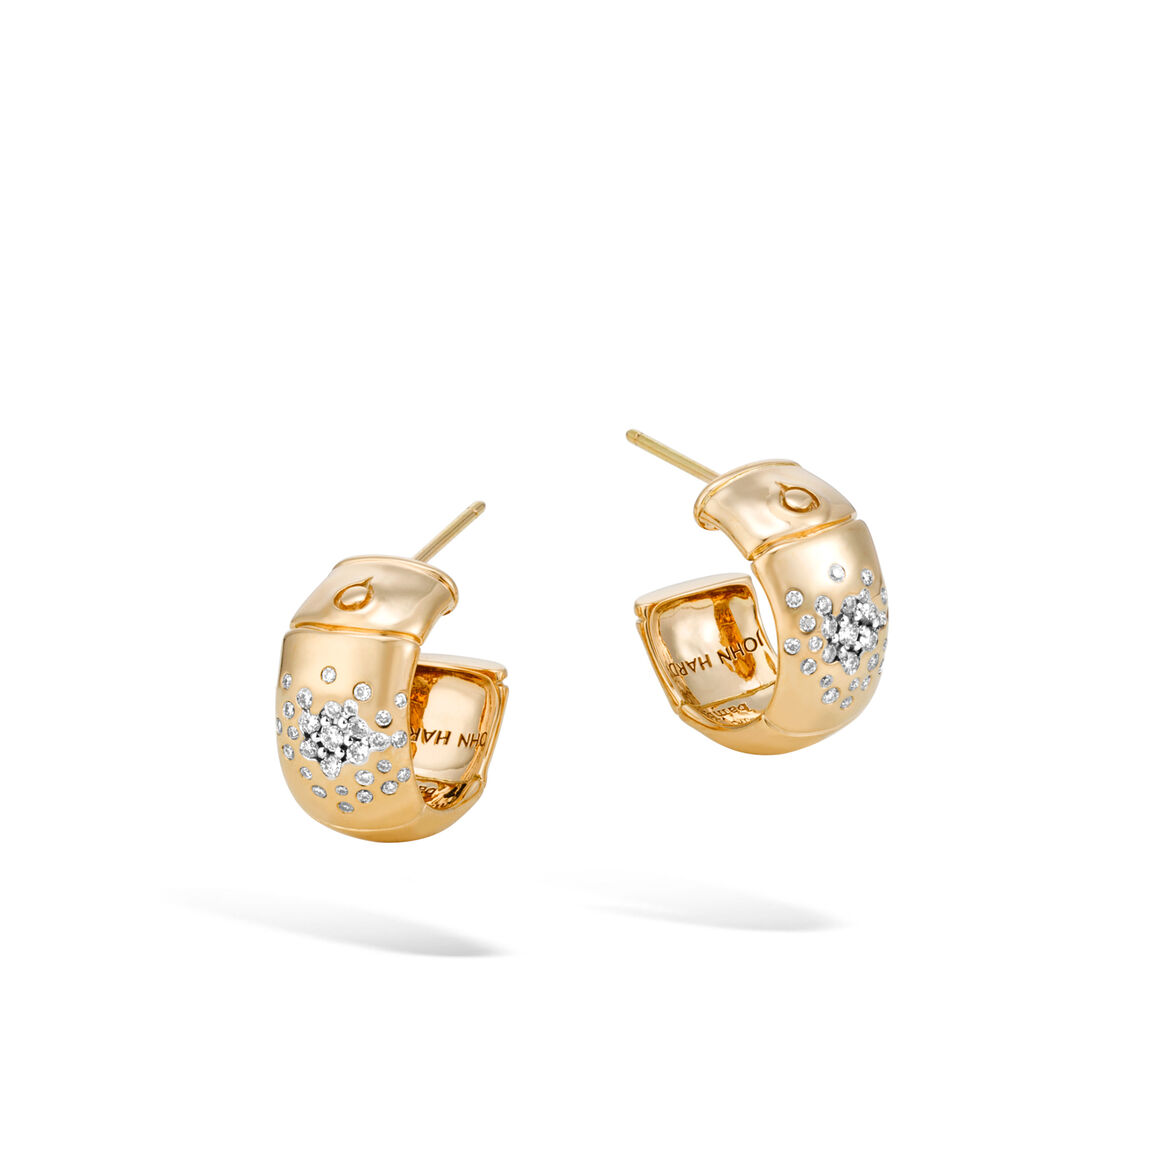 Bamboo Small Hoop Earring in 18K Gold with Diamonds